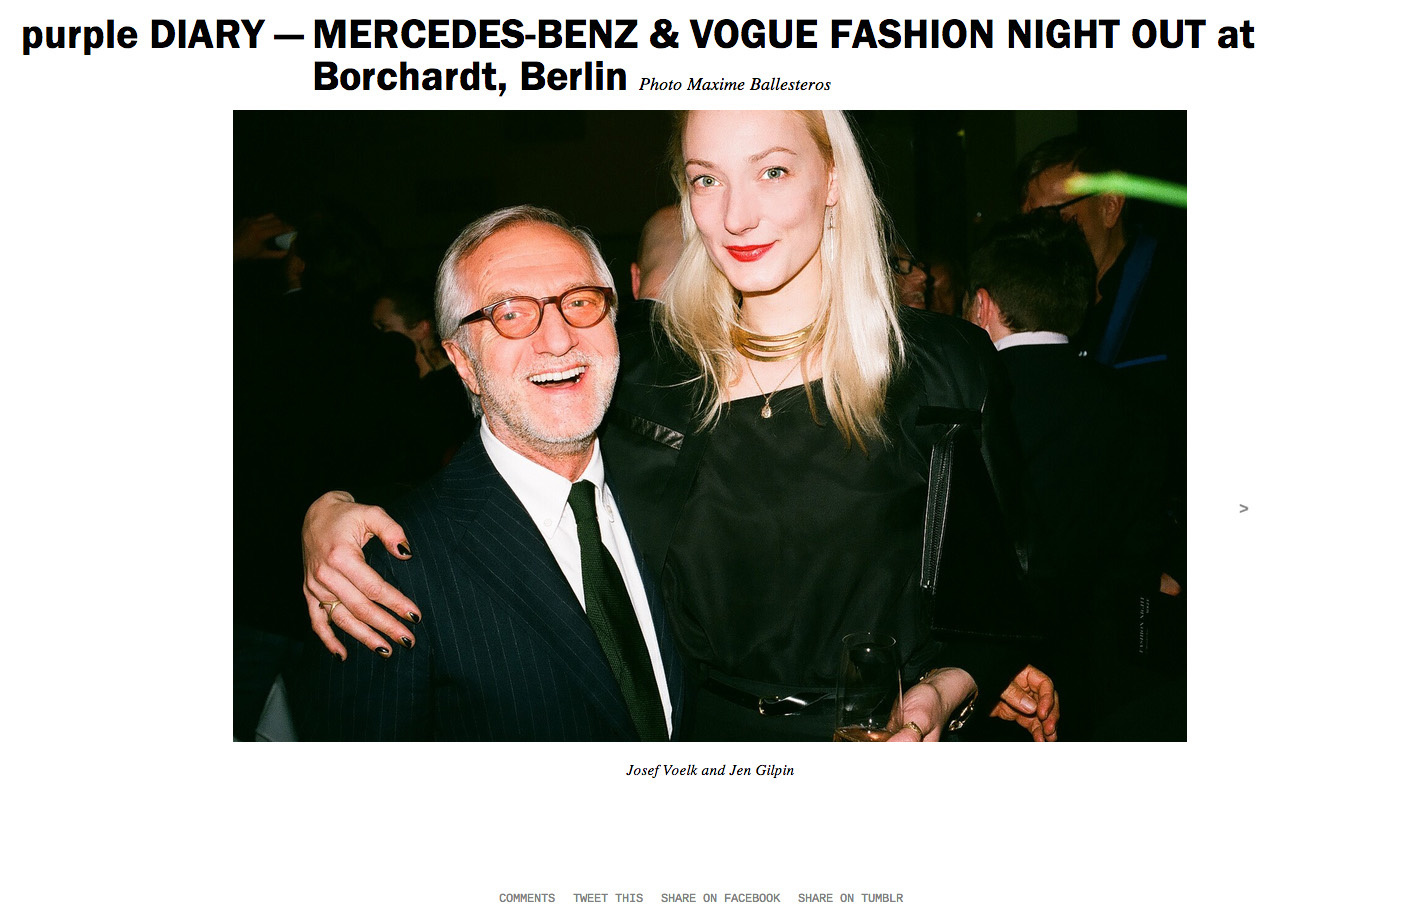 purple DIARY   MERCEDES BENZ   VOGUE FASHION NIGHT OUT at Borchardt  Berlin.jpg